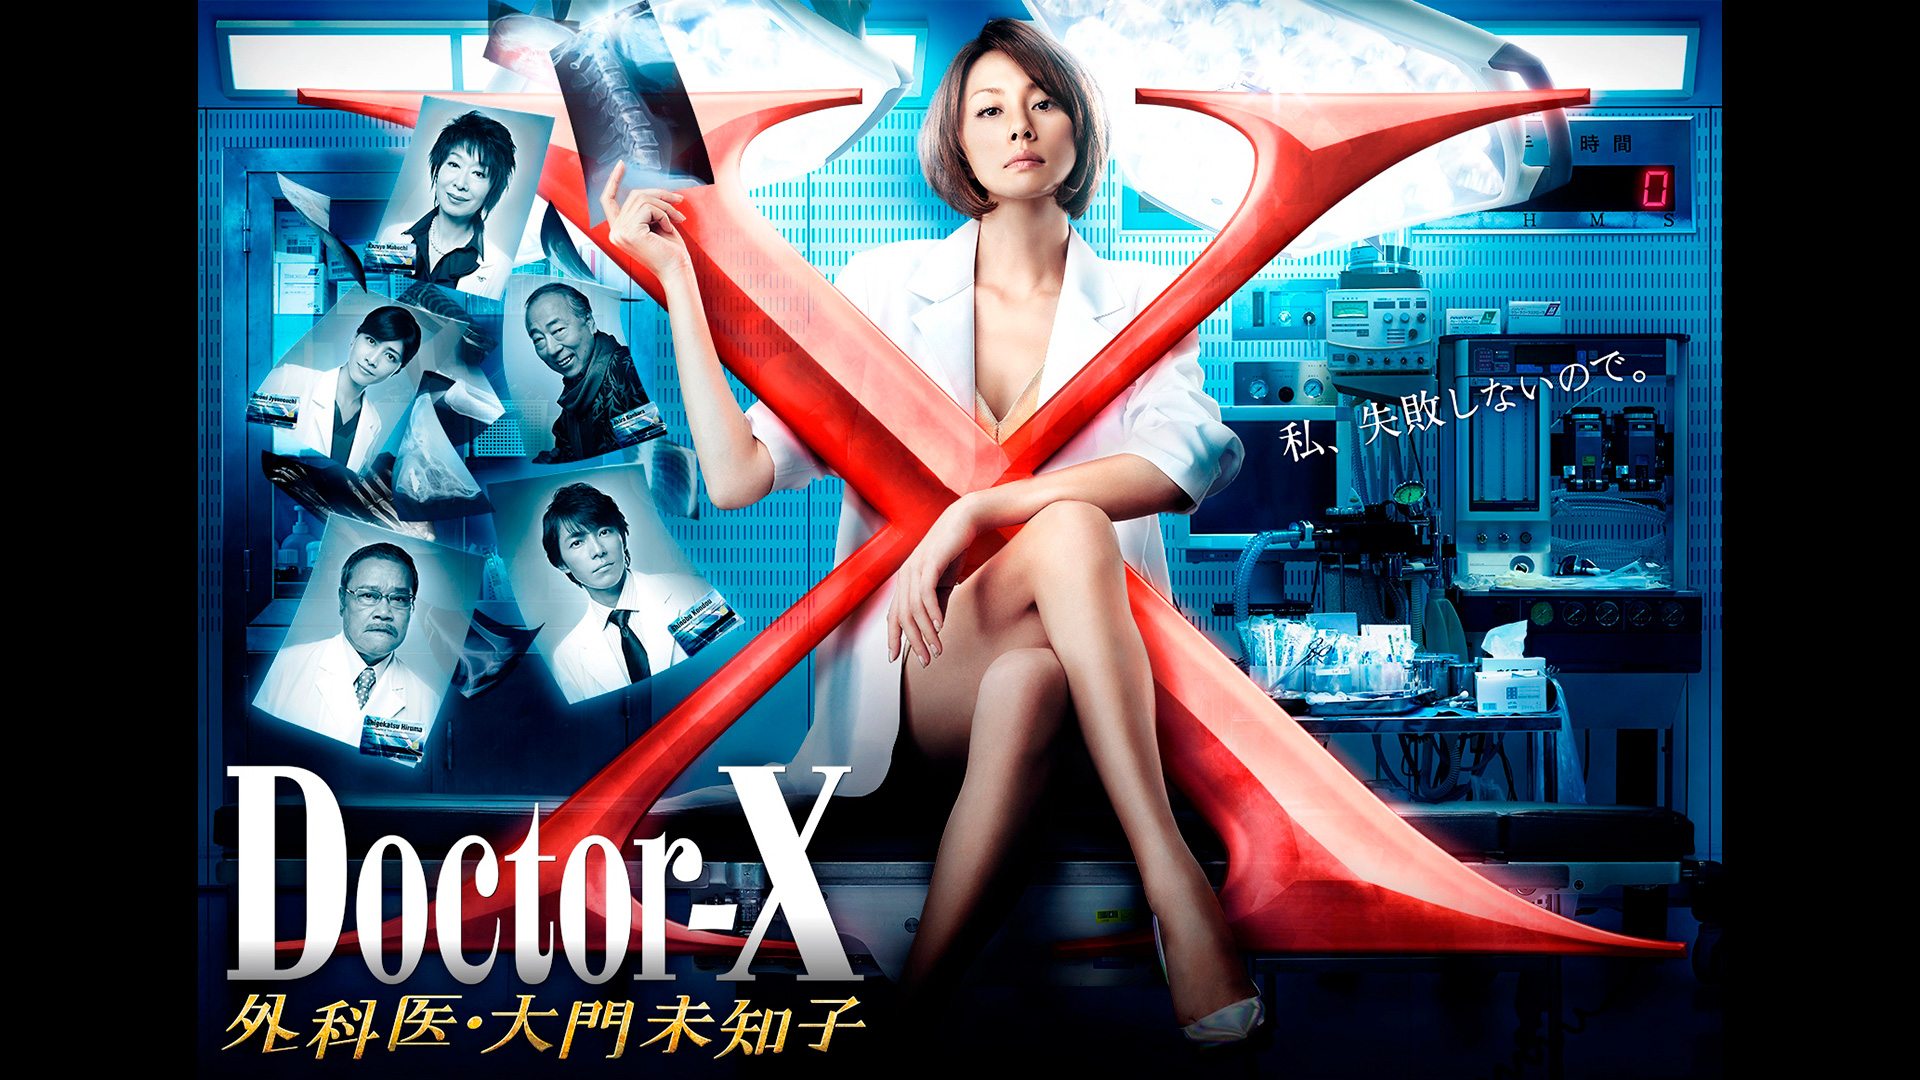 Doctor-X 2